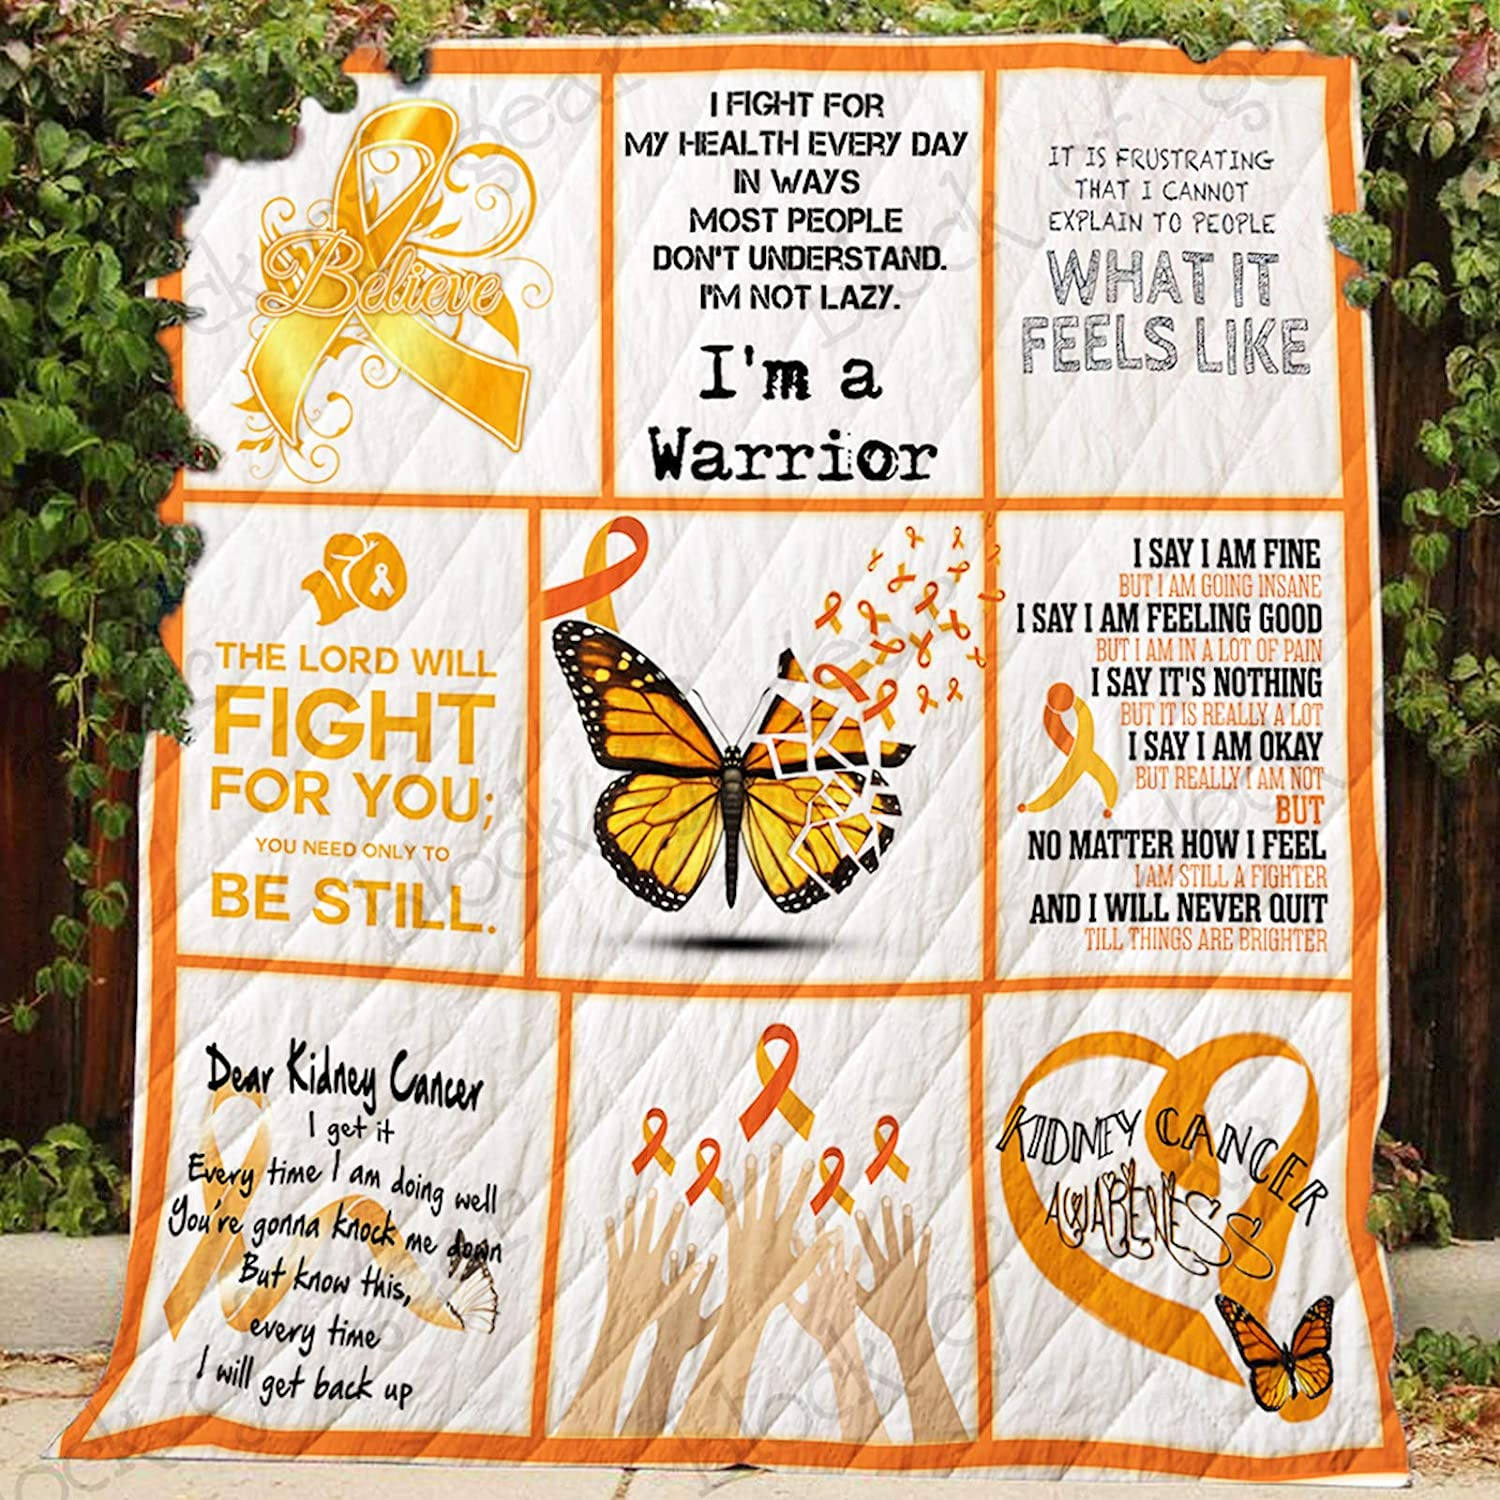 Kidney Cancer Awareness Quilt P383, Queen All-Season Quilts Comforters with Reversible Cotton King Queen Twin Size - Best Decorative Quilts-Unique Quilted for Gifts